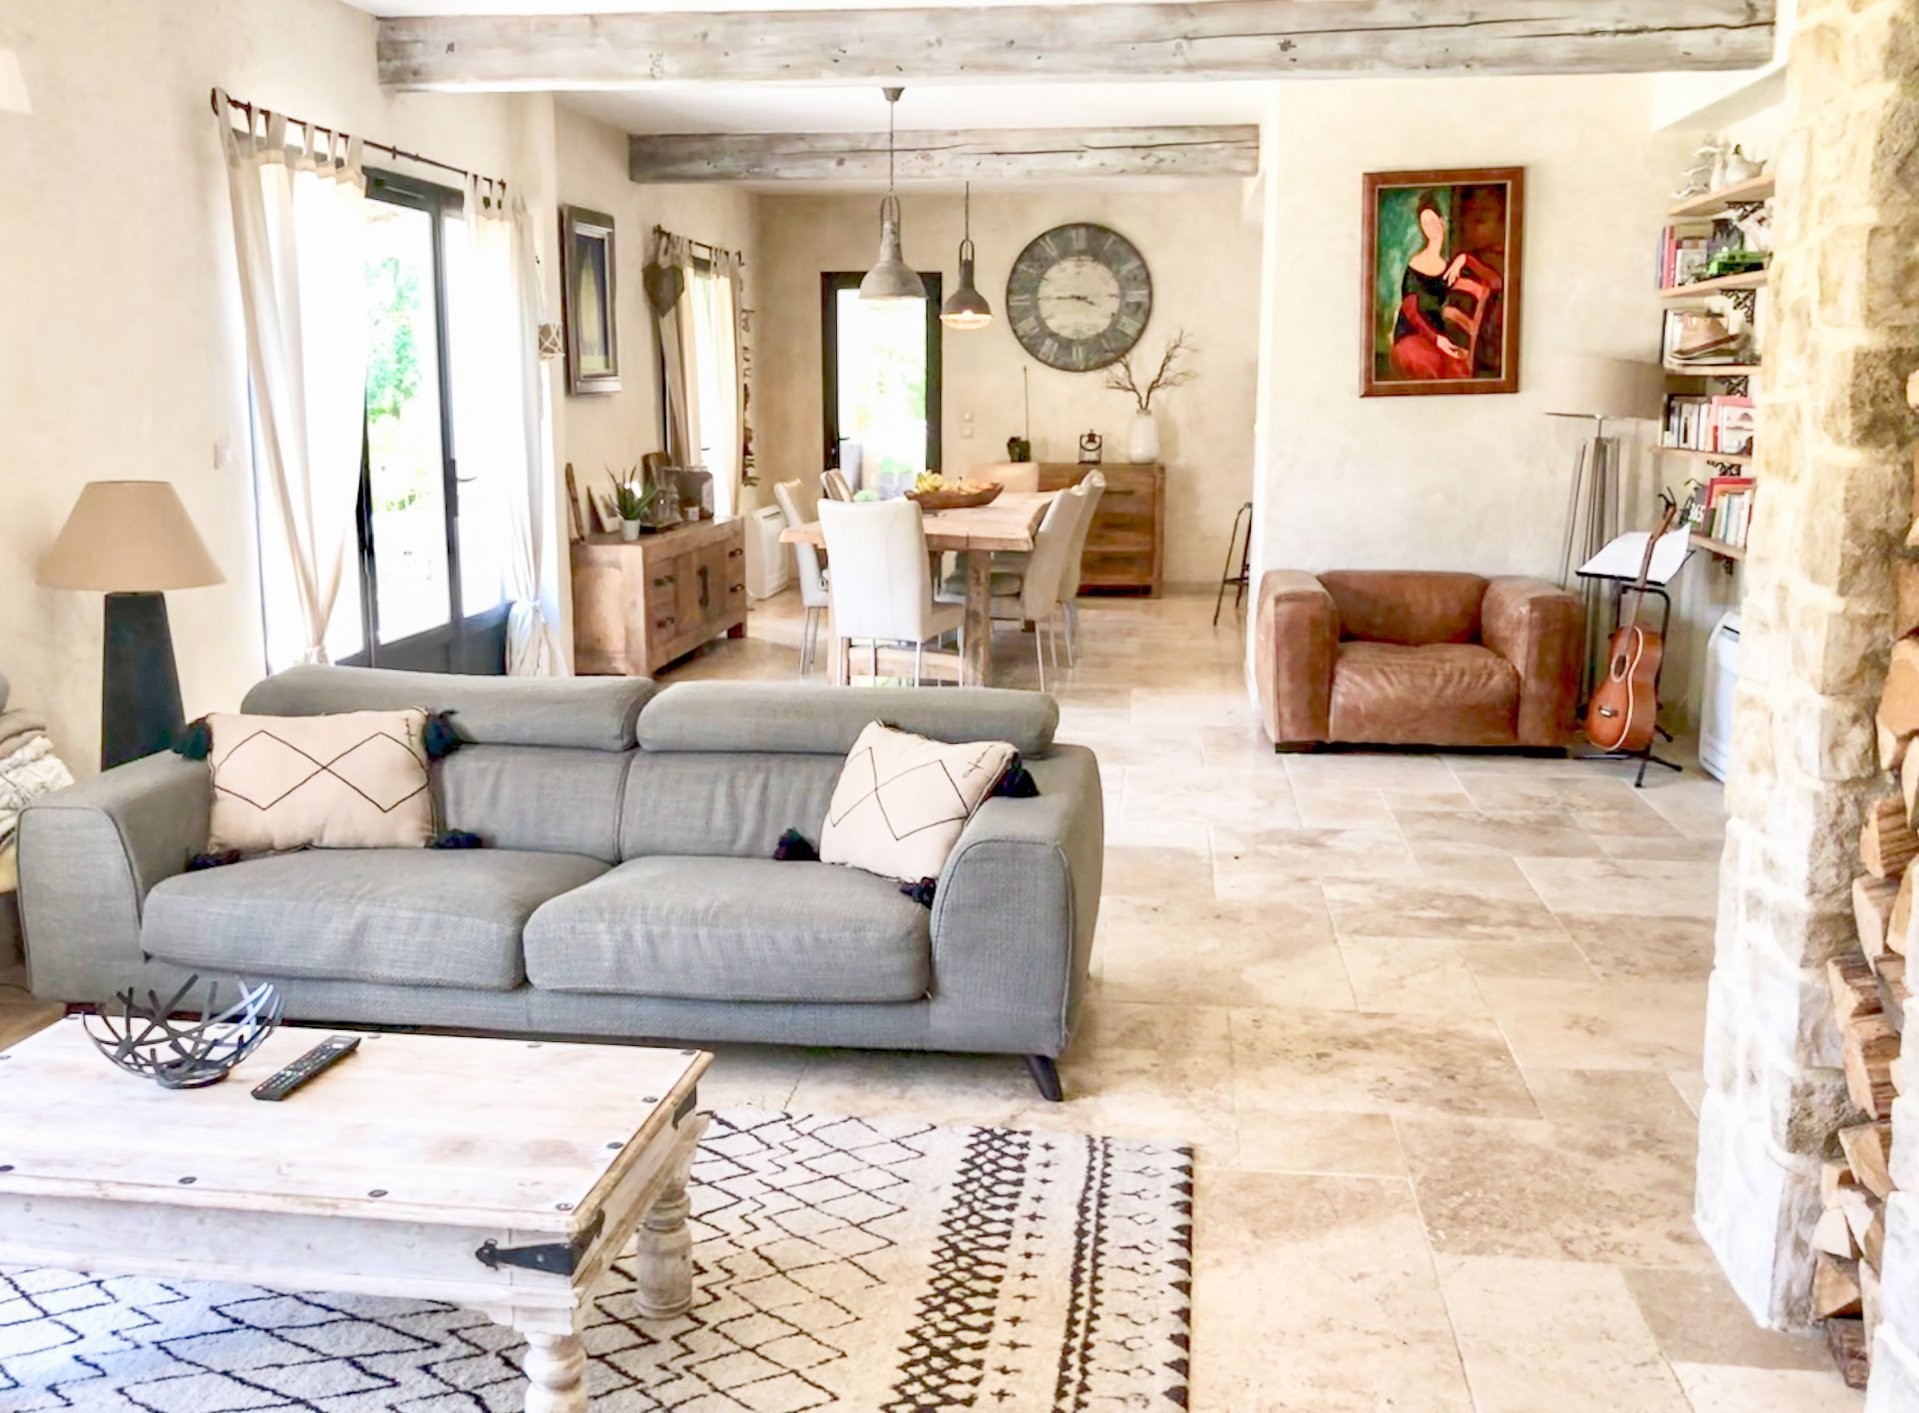 Mas 210m2 - 5/6 bedrooms - office - 5100sqm of flat land - garage - heated pool 10x4m and pool house landscaped - riverside (secure)